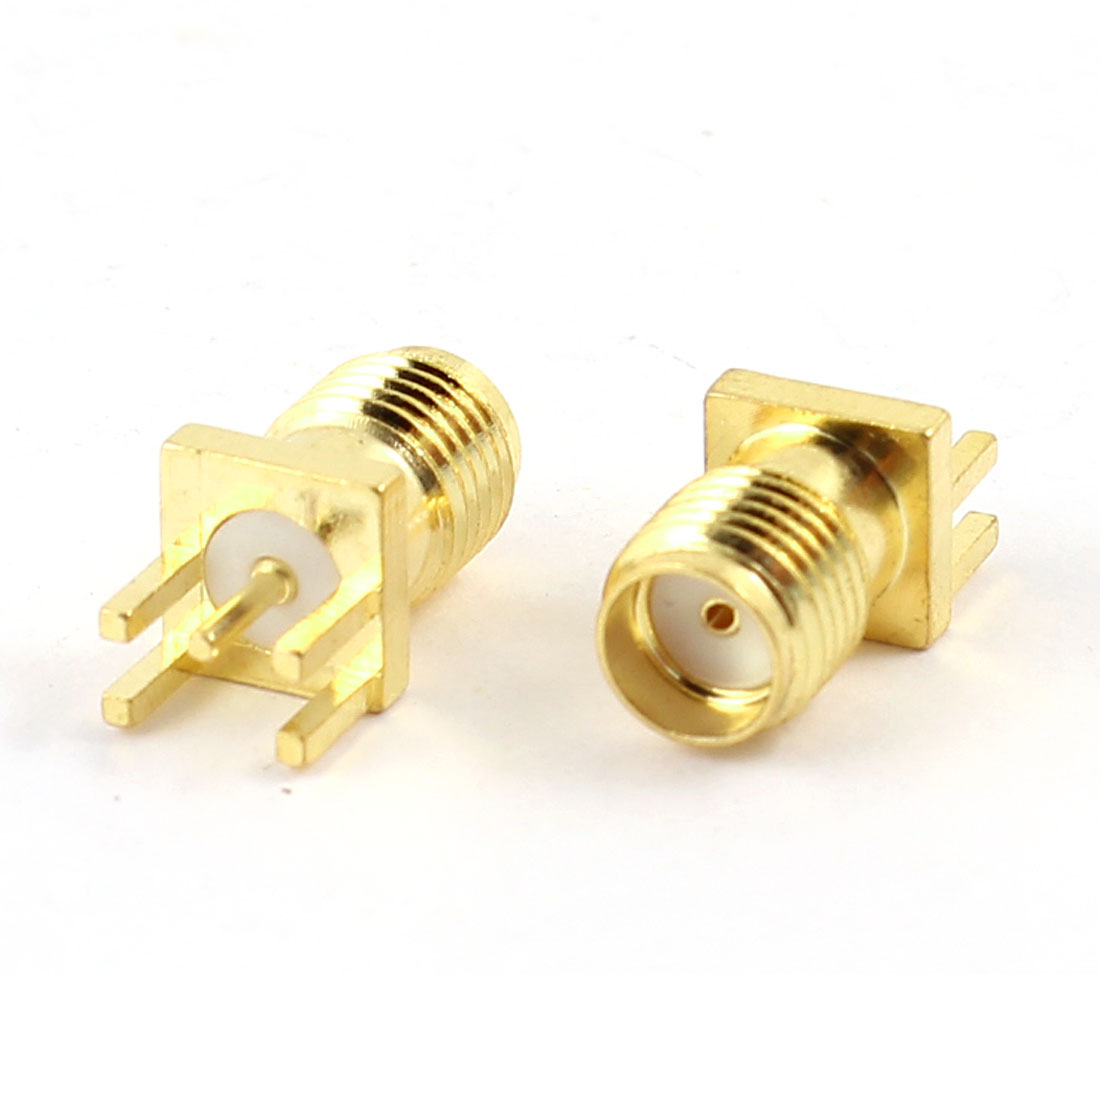 UXCELL Pack Size(L*W*H) 2 Pcs Rf Coaxial Pcb Board Soldering Antenna Base Connector 5 Pin Sma Female Jack Adapter(China (Mainland))